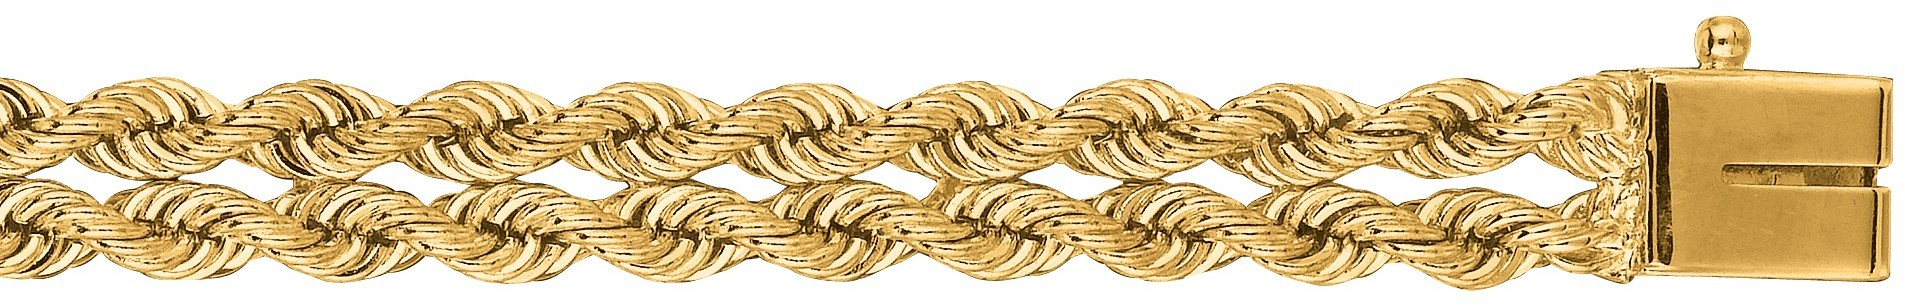 "7"" 14K Yellow Gold 6.0mm (1/4"") Polished Diamond Cut Multi Line Rope Chain w/ Box Catch Clasp"